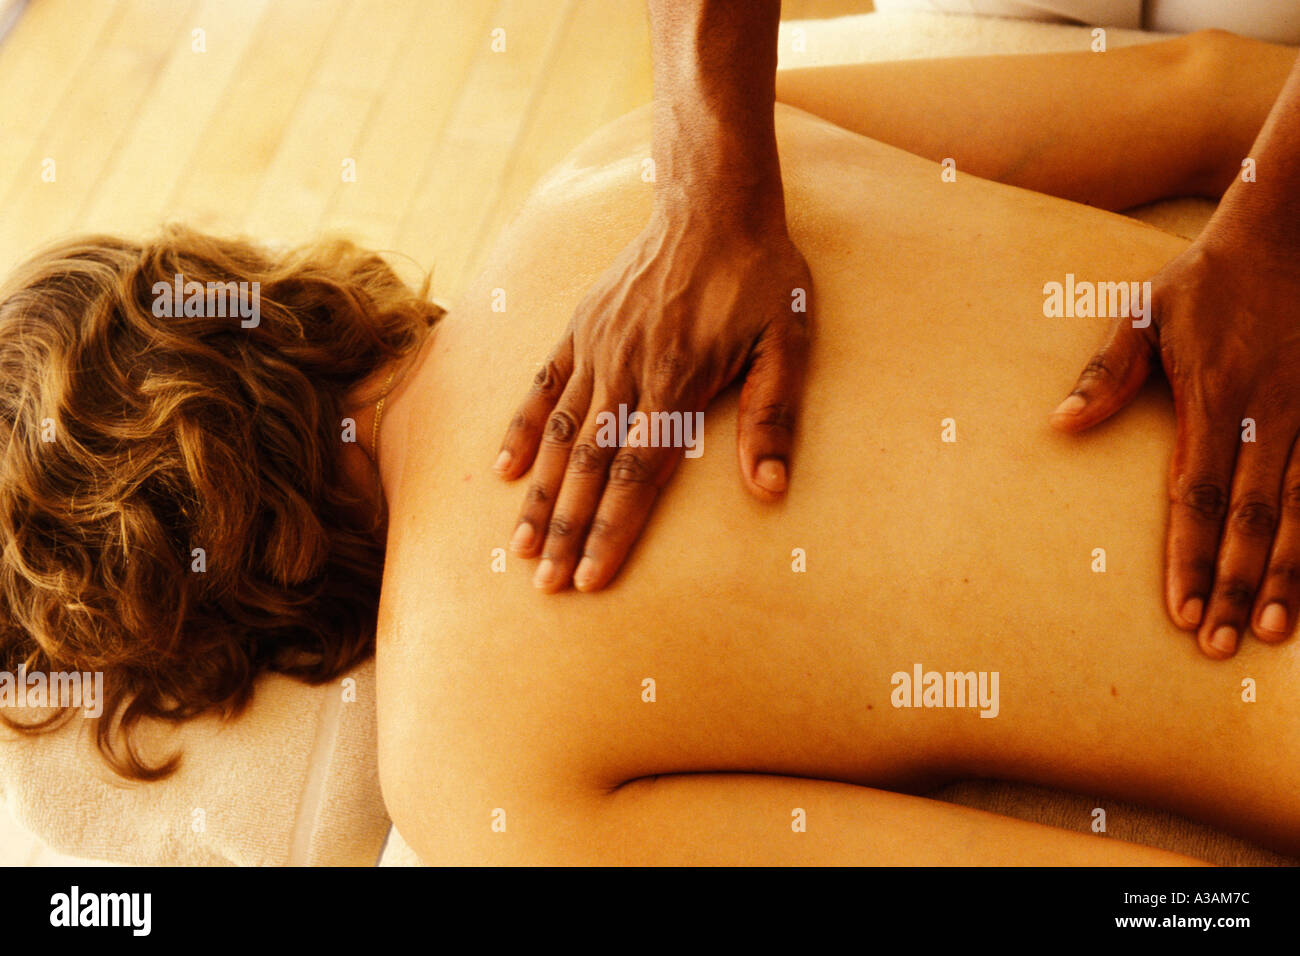 Barbados, St James, Sandy Lane spa, massage - Stock Image